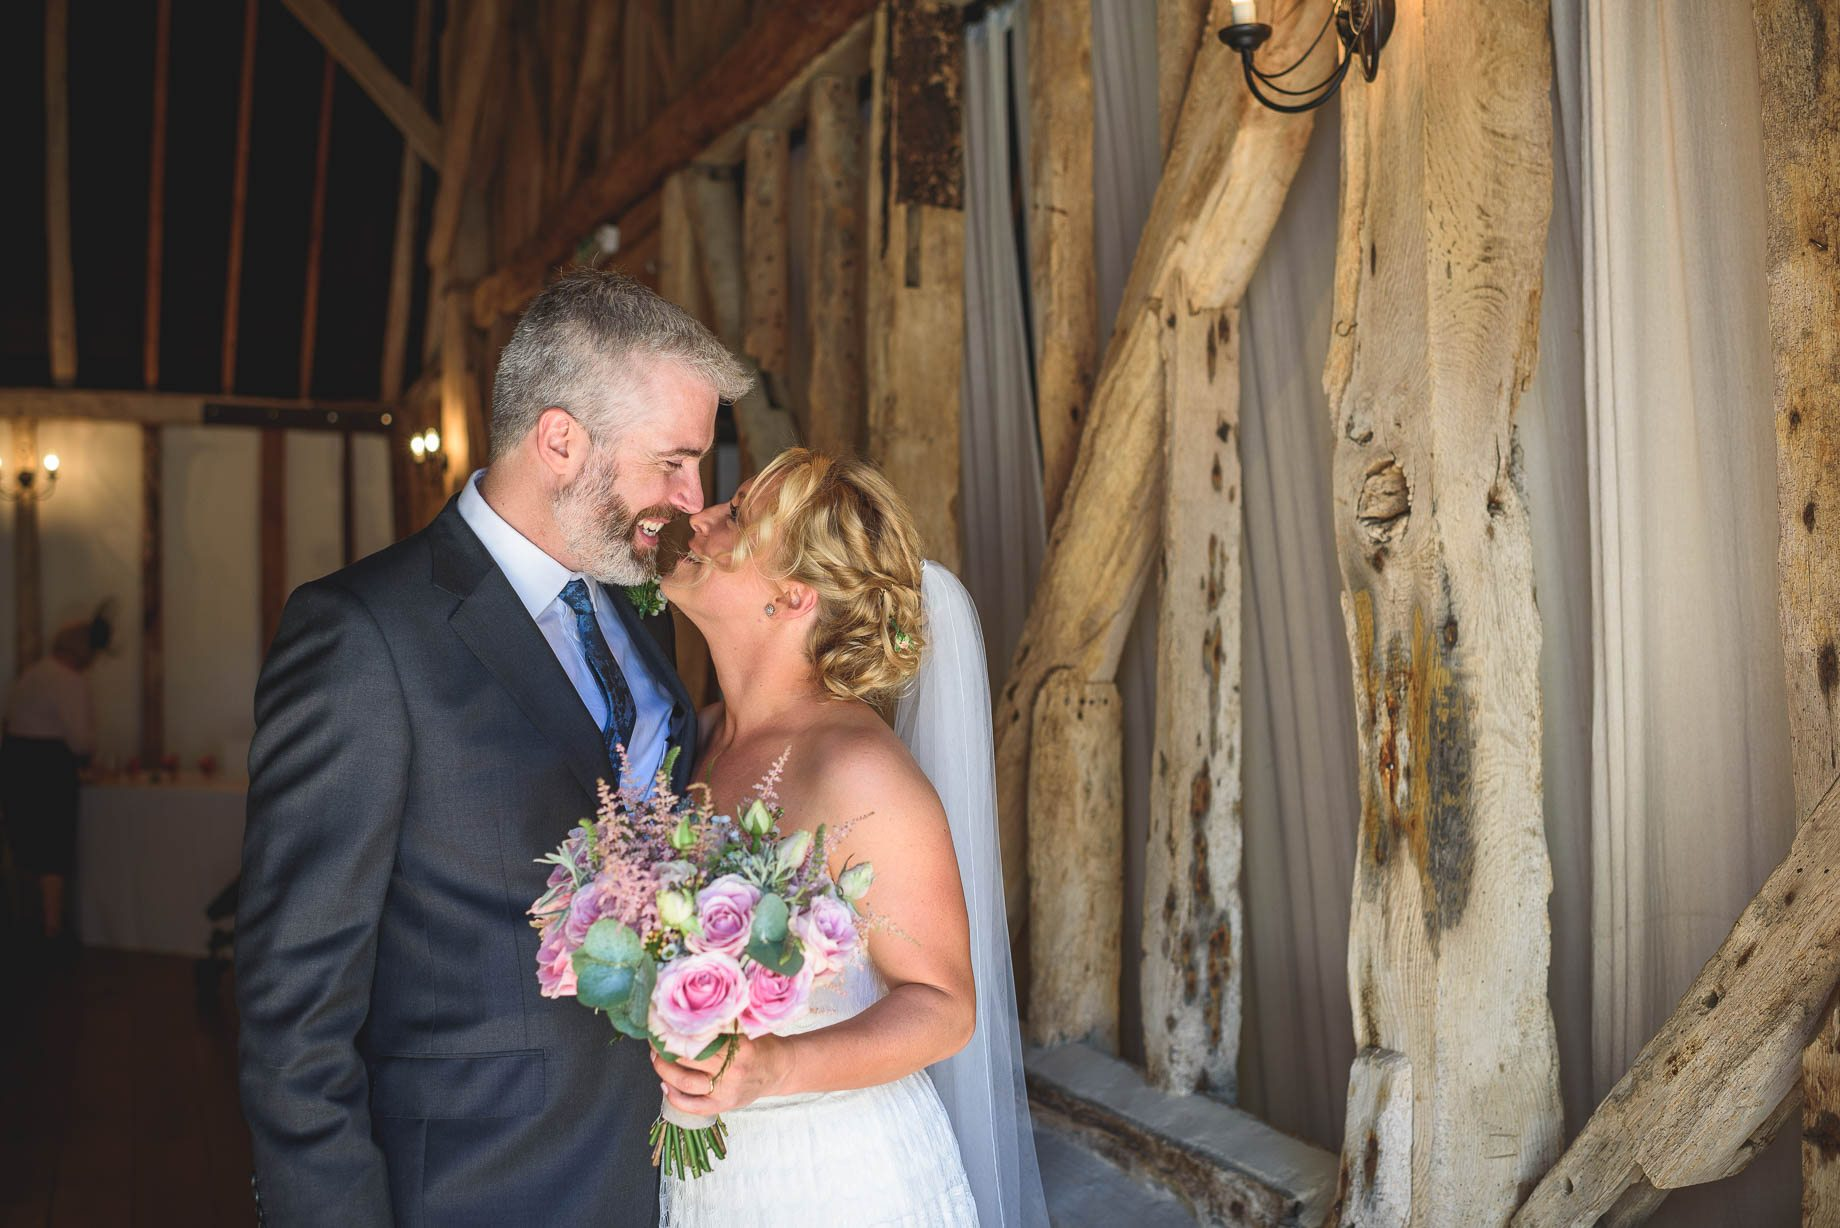 Clock-Barn-wedding-photography-by-Guy-Collier-Photography-Rebecca-and-Dom-83-of-198